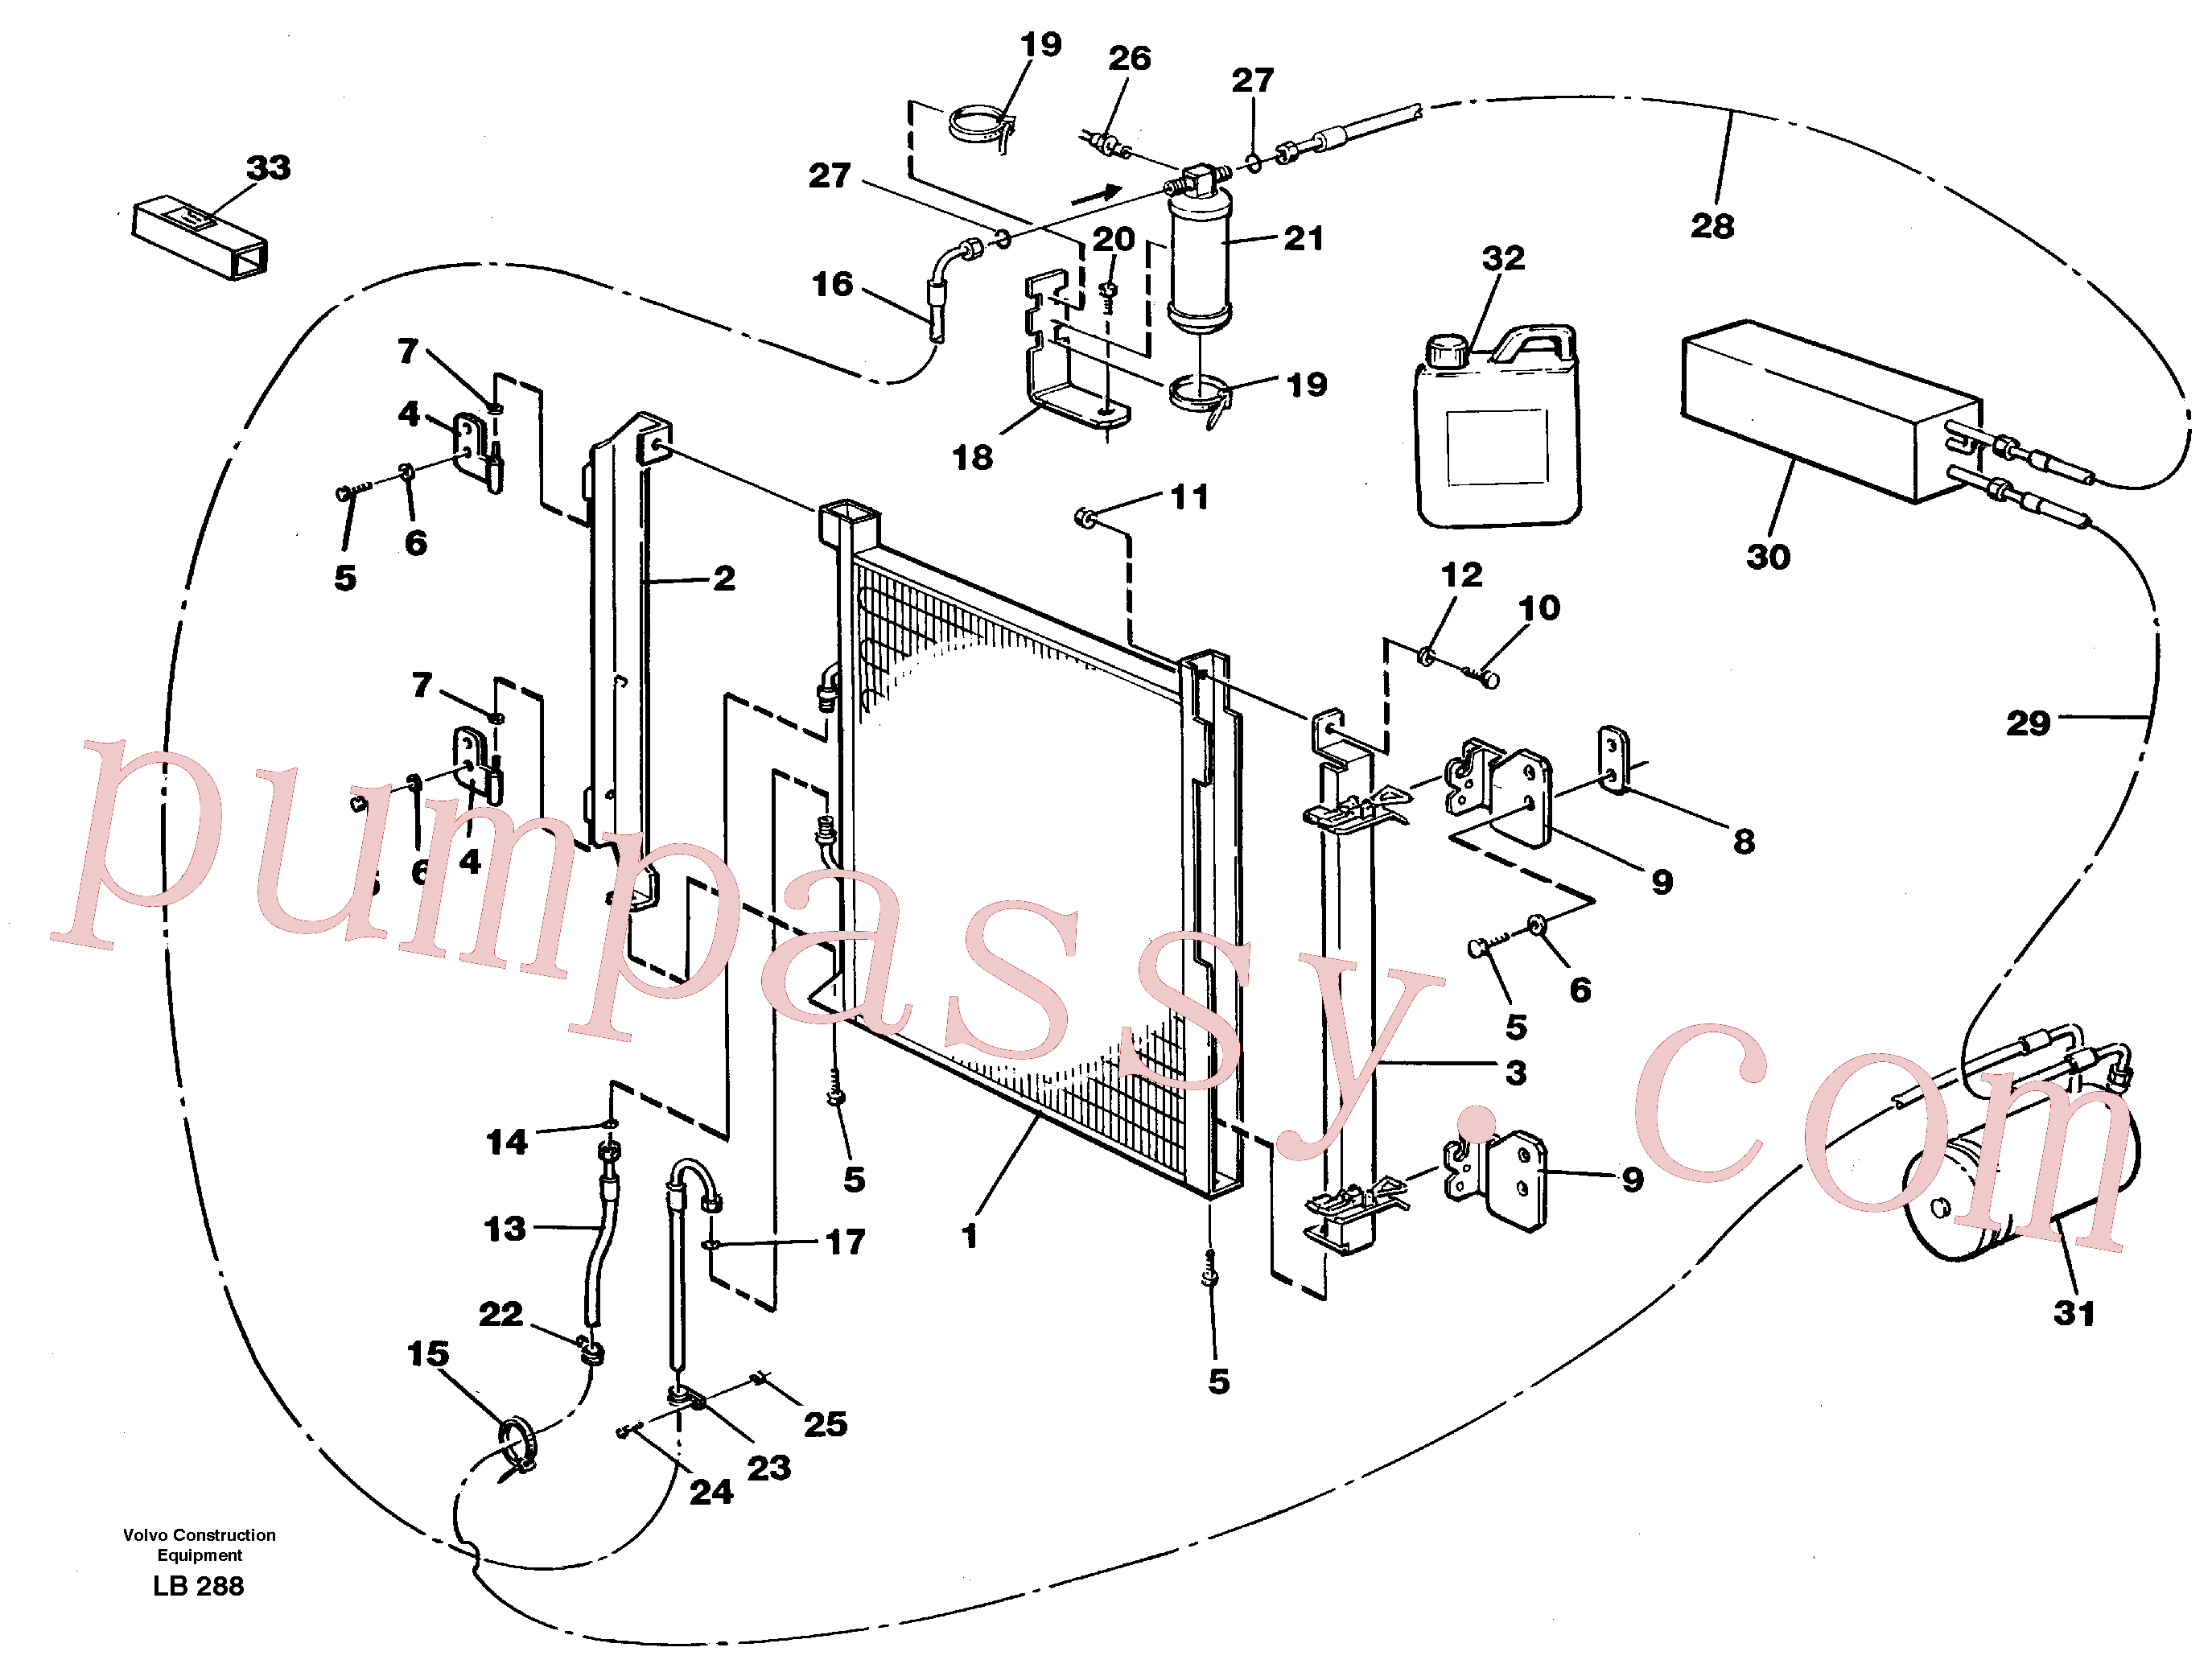 VOE952630 for Volvo Condensor with fitting parts, cooling agent R134a(LB288 assembly)